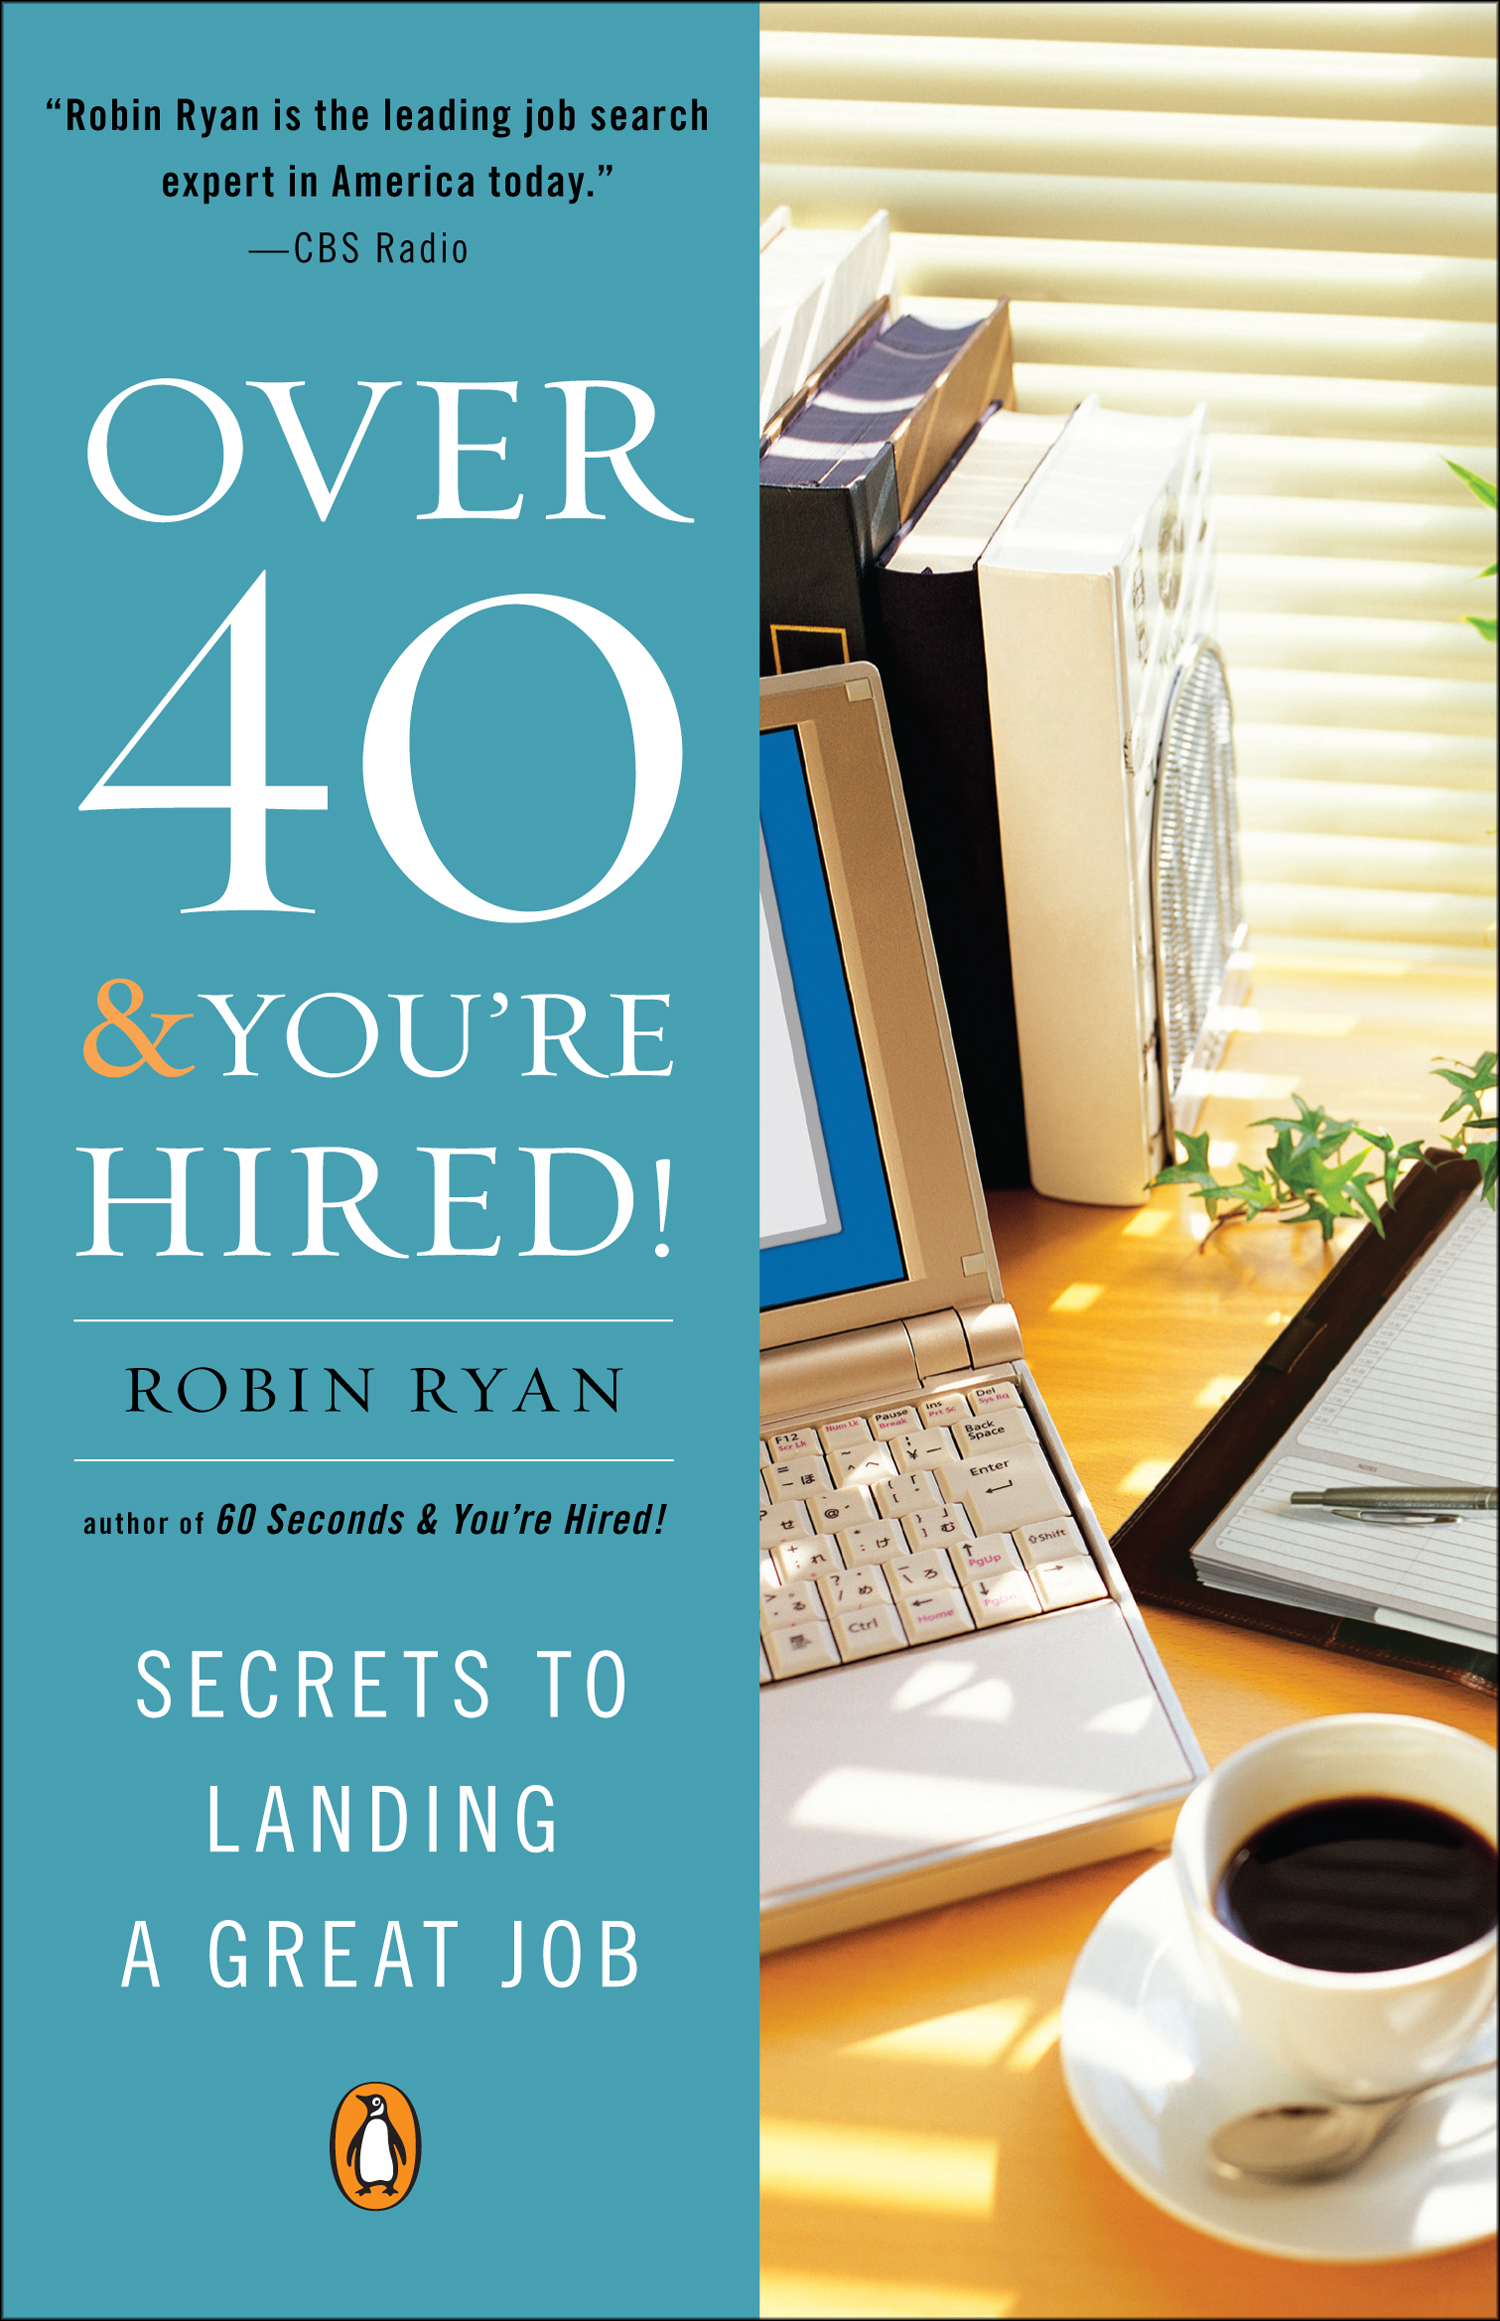 OVER-40-AND-YOU'RE-HIRED-ss6.jpg